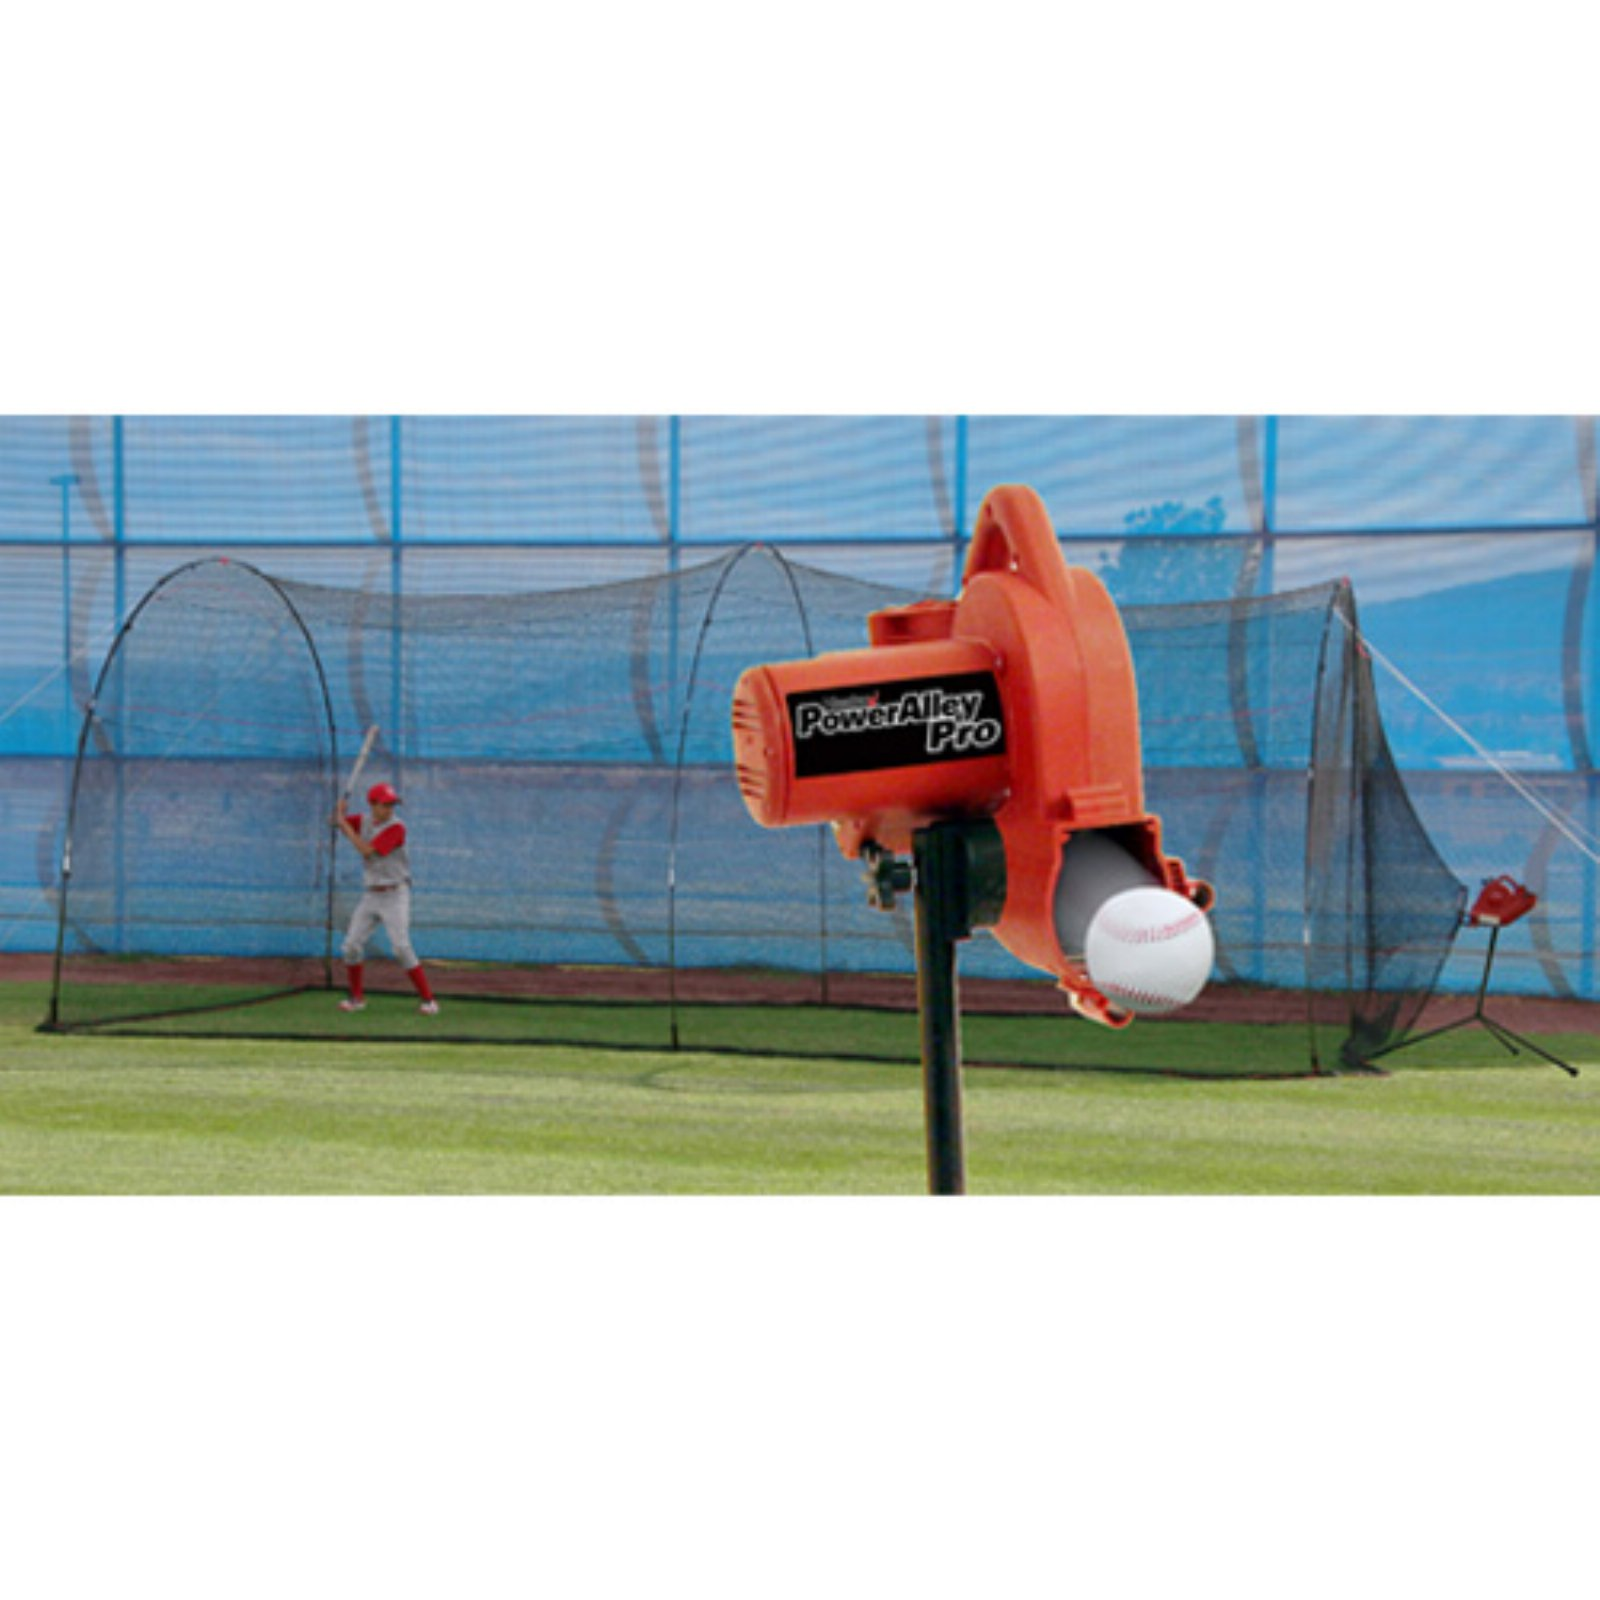 Heater Sports Power Alley PRO Pitching Machine & PowerAlley Batting Cage